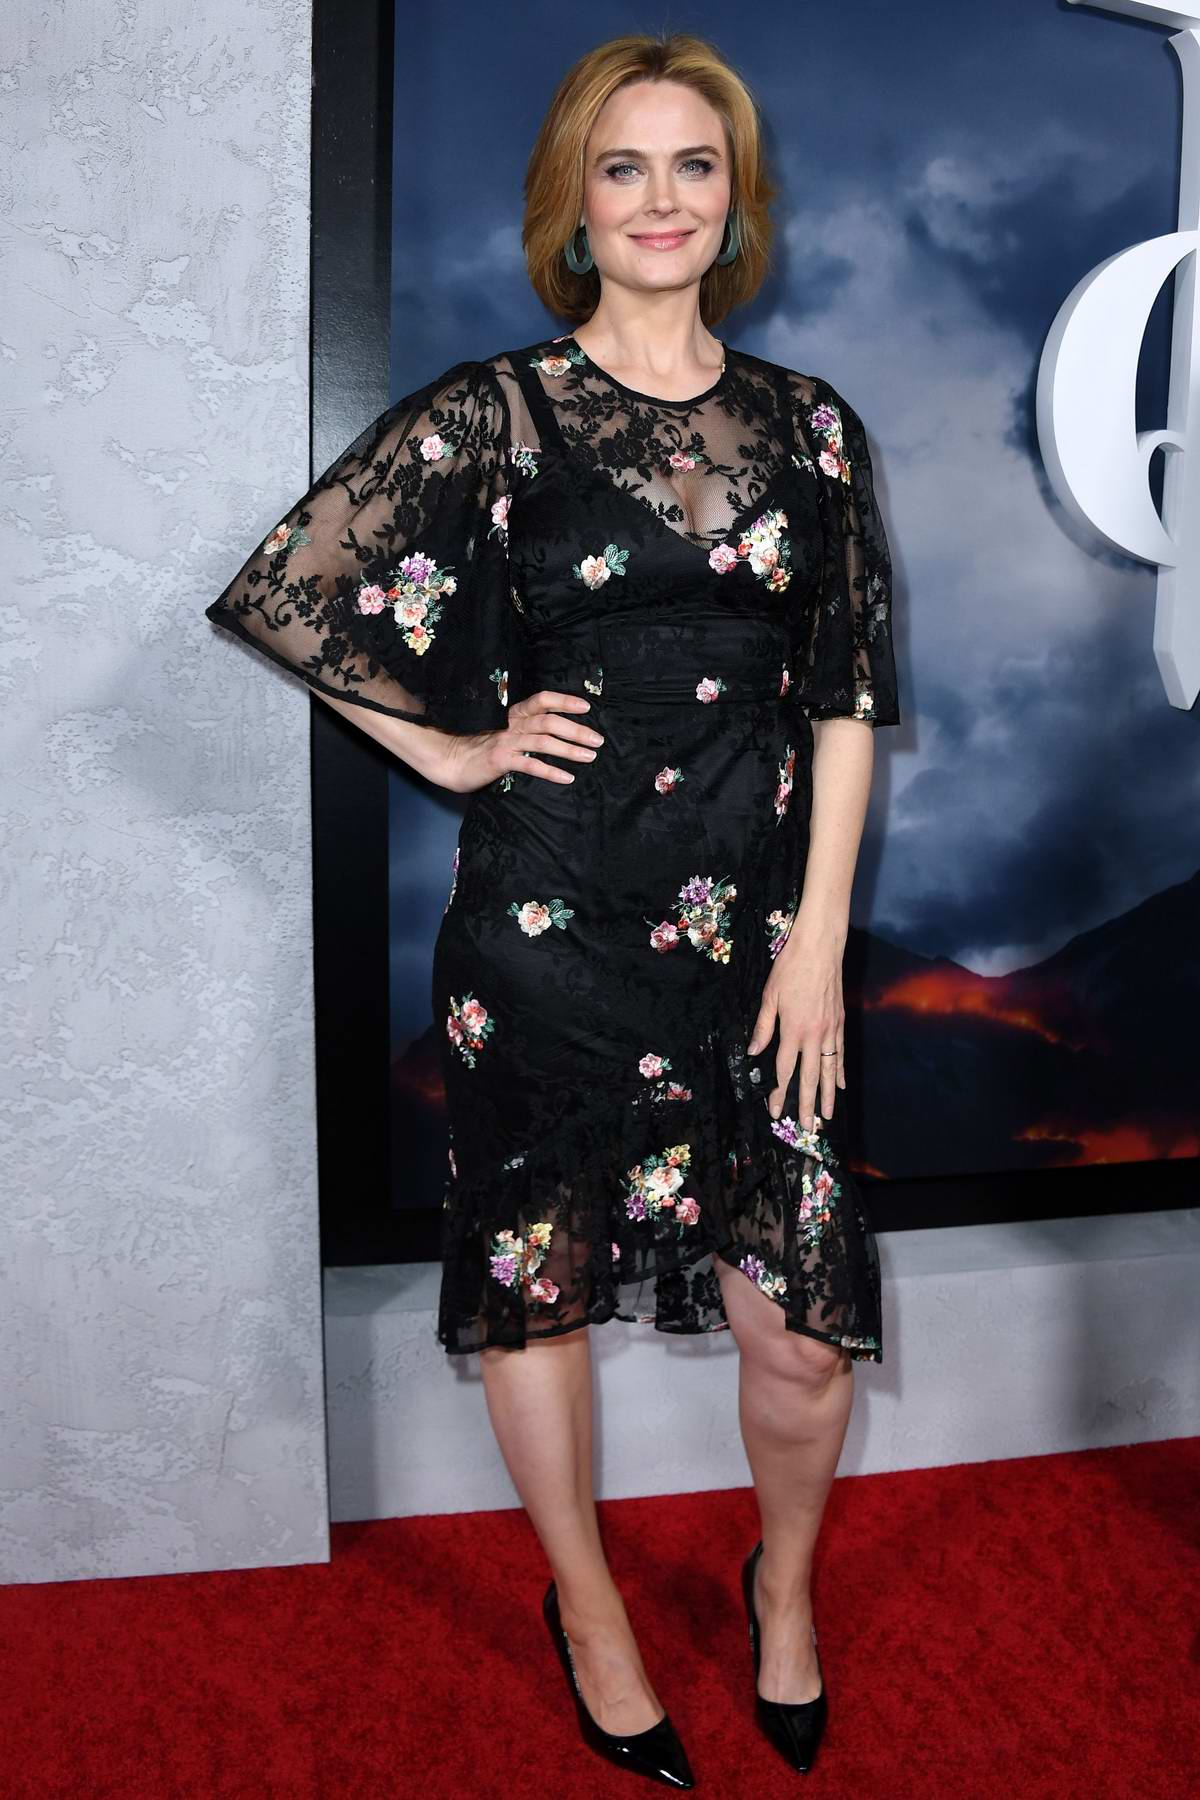 Emily Deschanel attends the Premiere of Apple TV+'s 'Mythic Quest: Raven's Banquet' in Hollywood, California